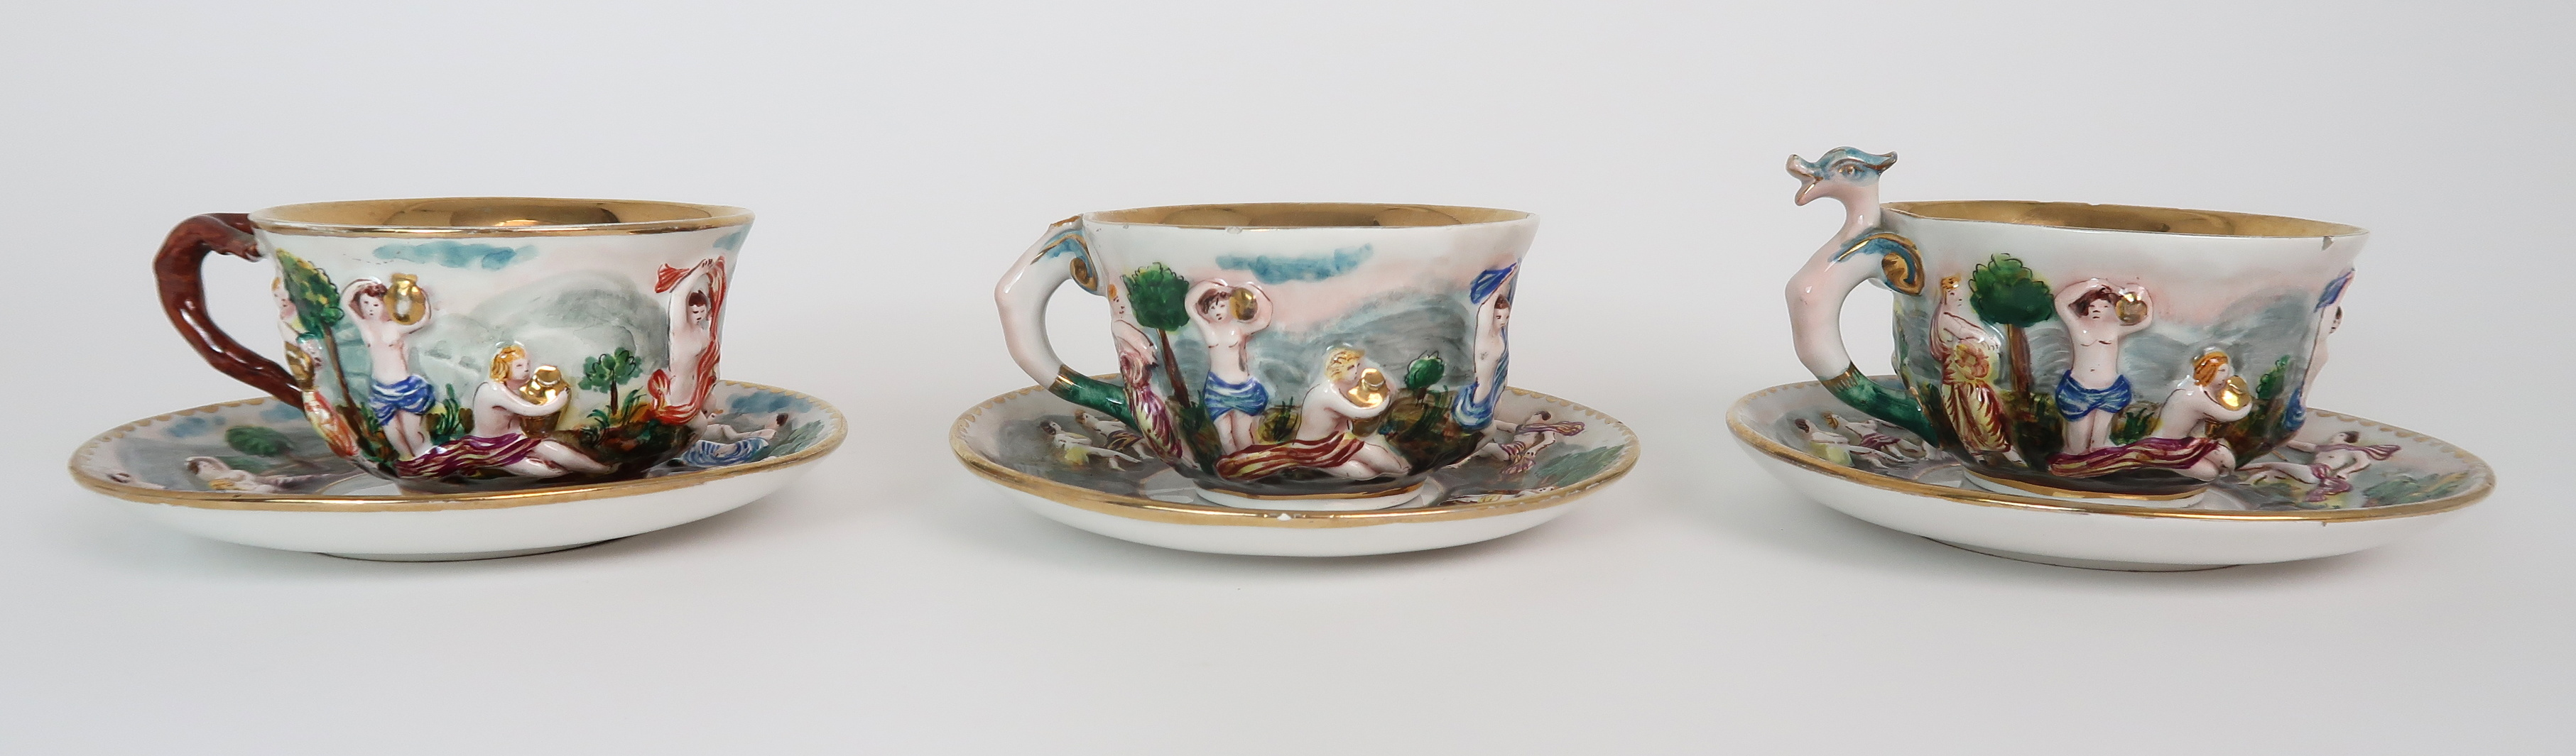 THREE CAPODIMONTE CUPS AND SAUCERS decorated with bacchanalian scenes, a pair of Sevres pots - Image 3 of 16